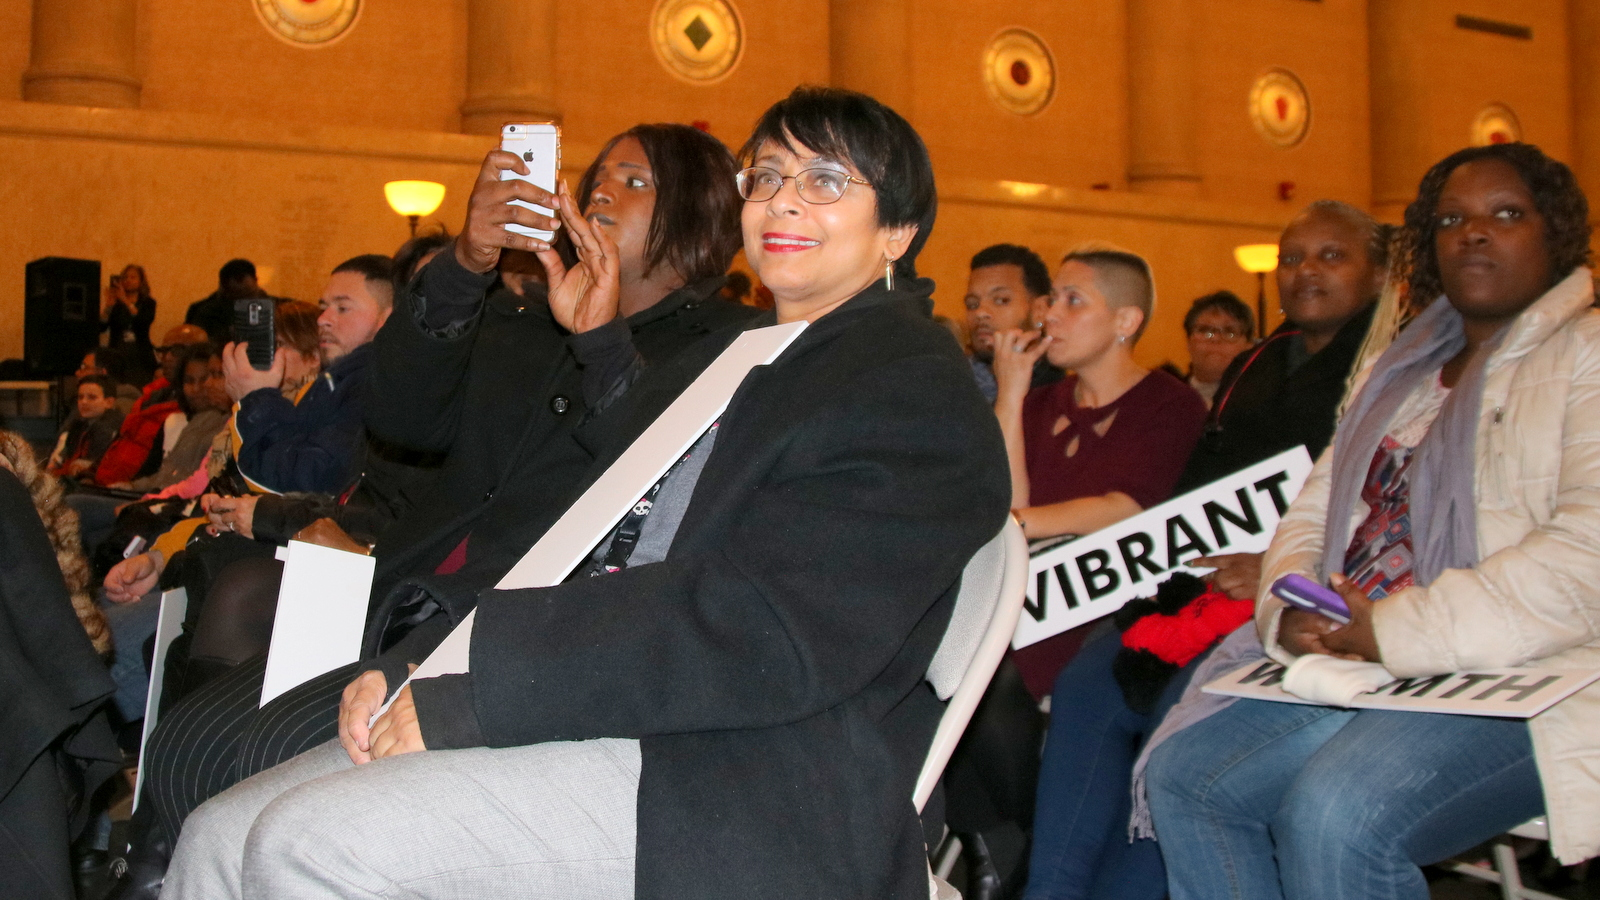 Kim Morton attends at the mayor's candlelight vigil of crime victims last December with Samantha Smith, a former Tent City homeless leader who briefly served as Mayor Pugh's LGBT liaison. (Fern Shen)